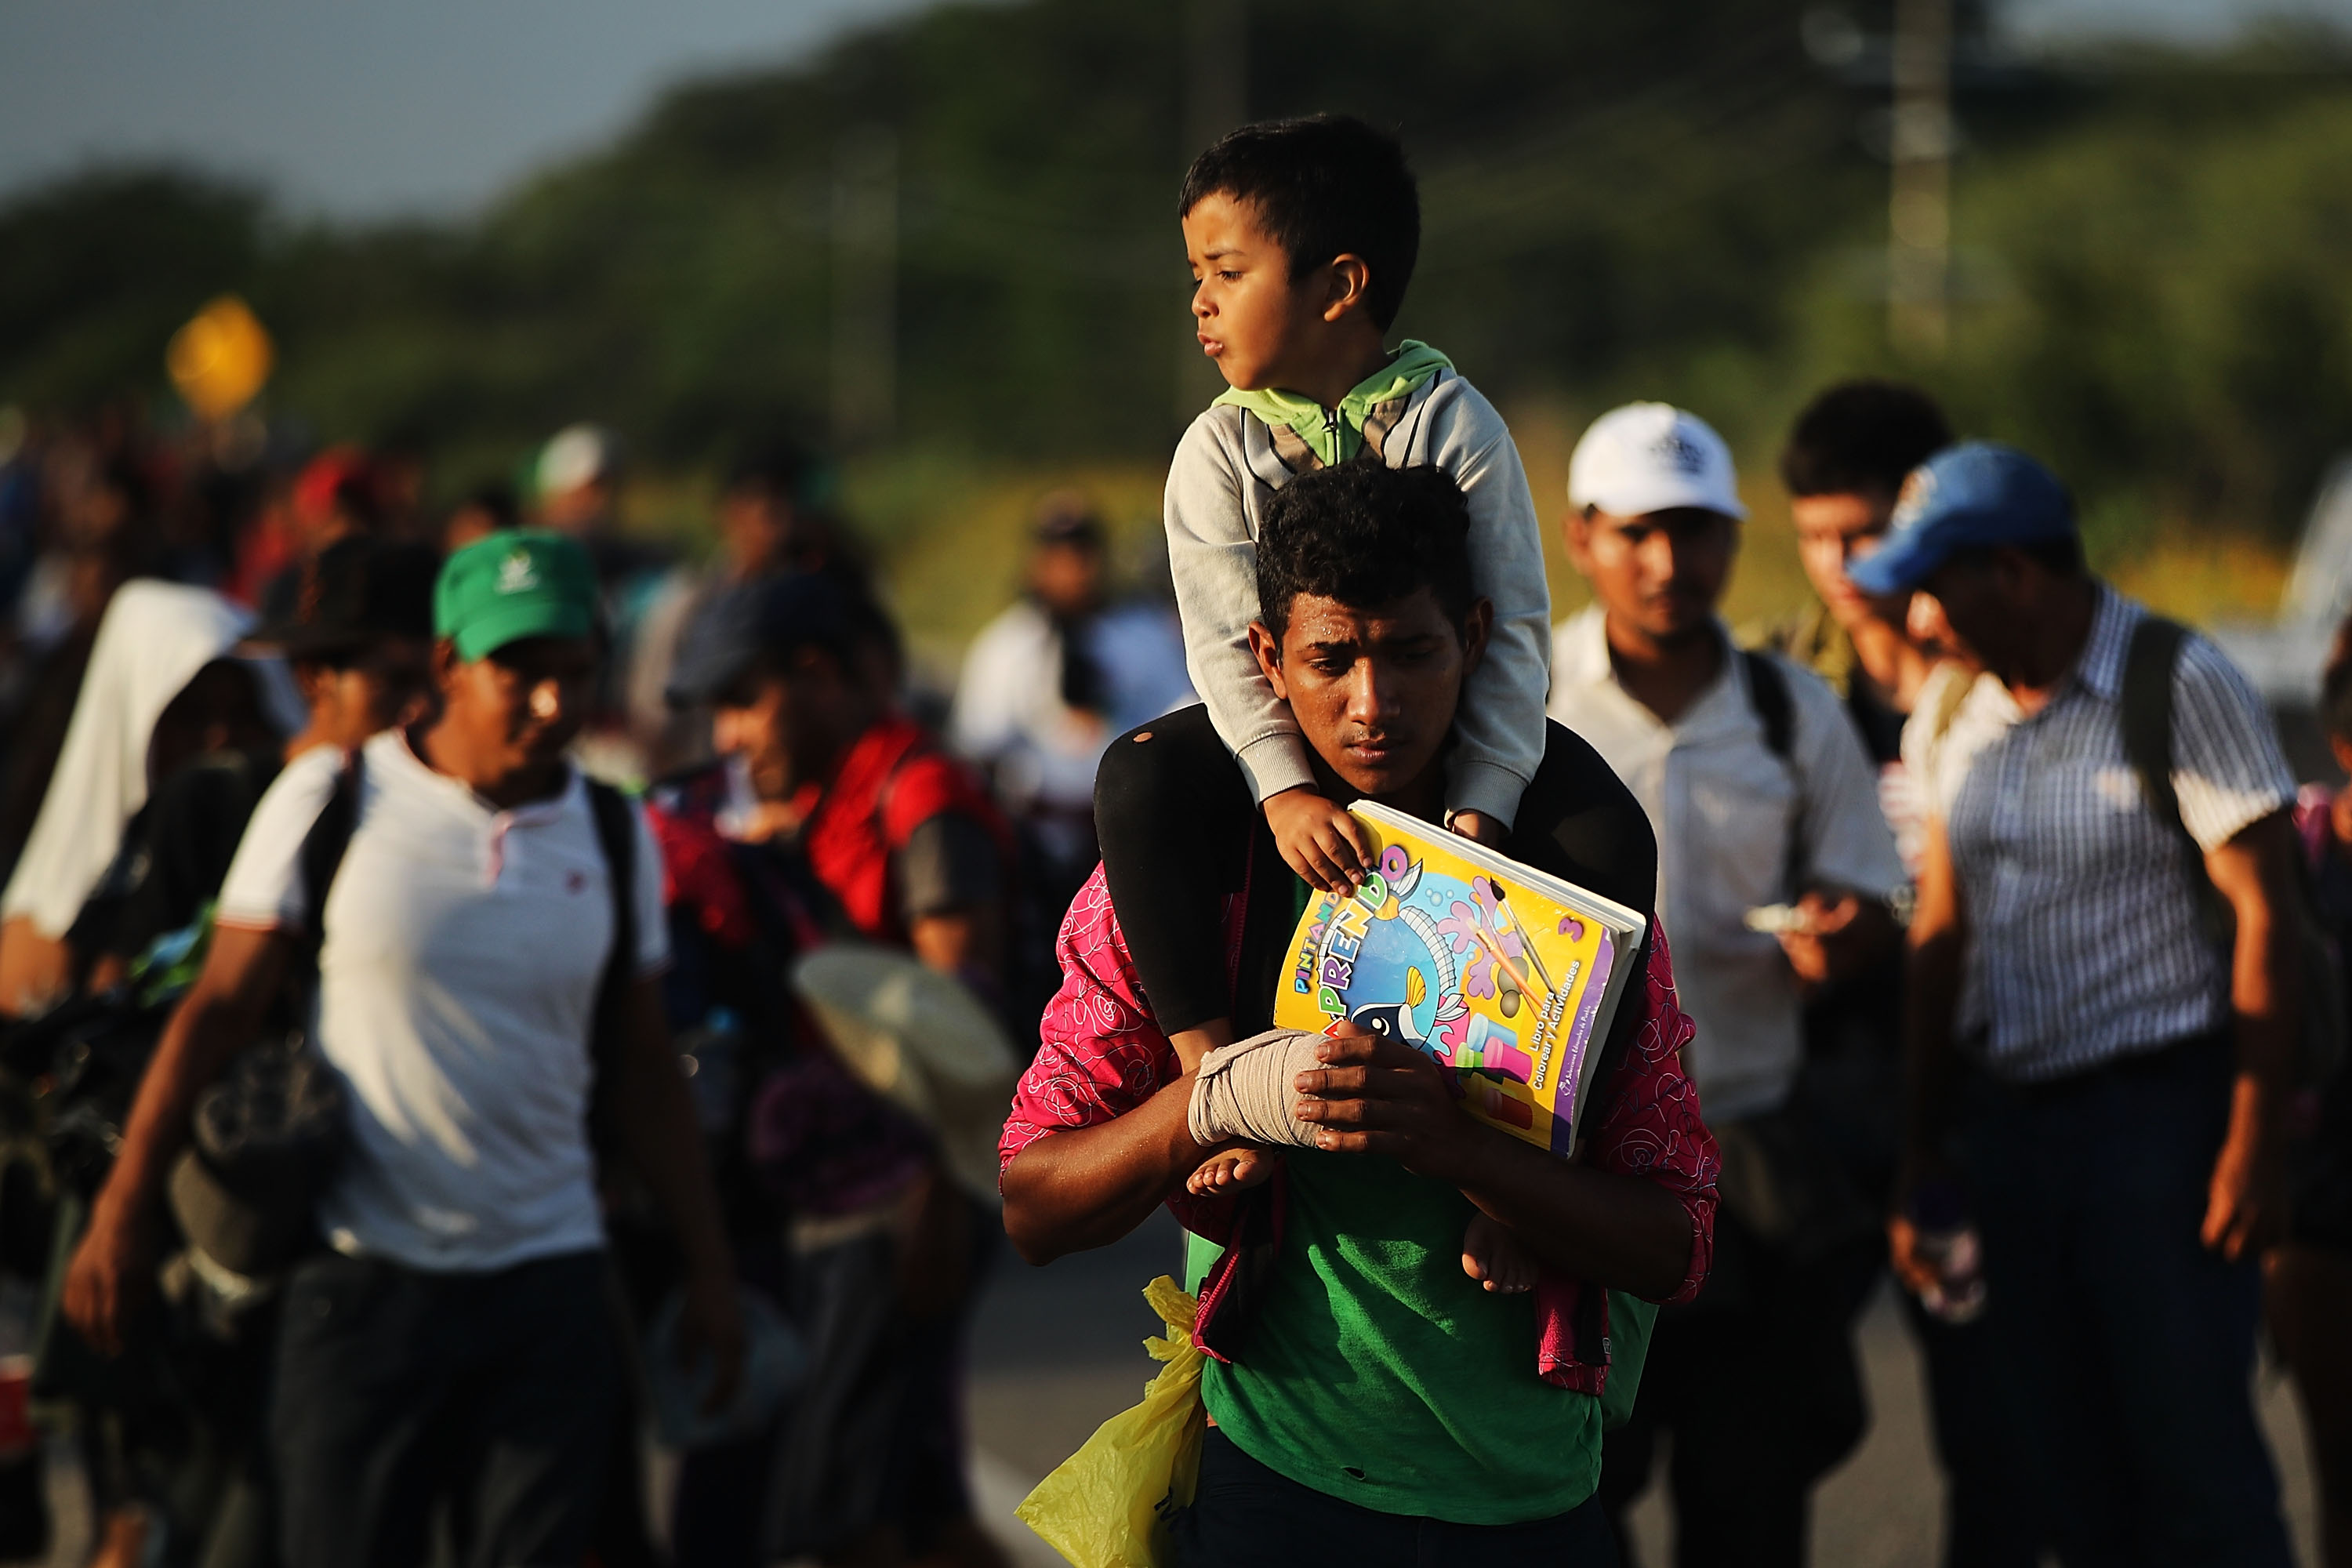 This Video Illustrating Mexicans' Xenophobic Attitudes Toward Central American Caravan Went Viral